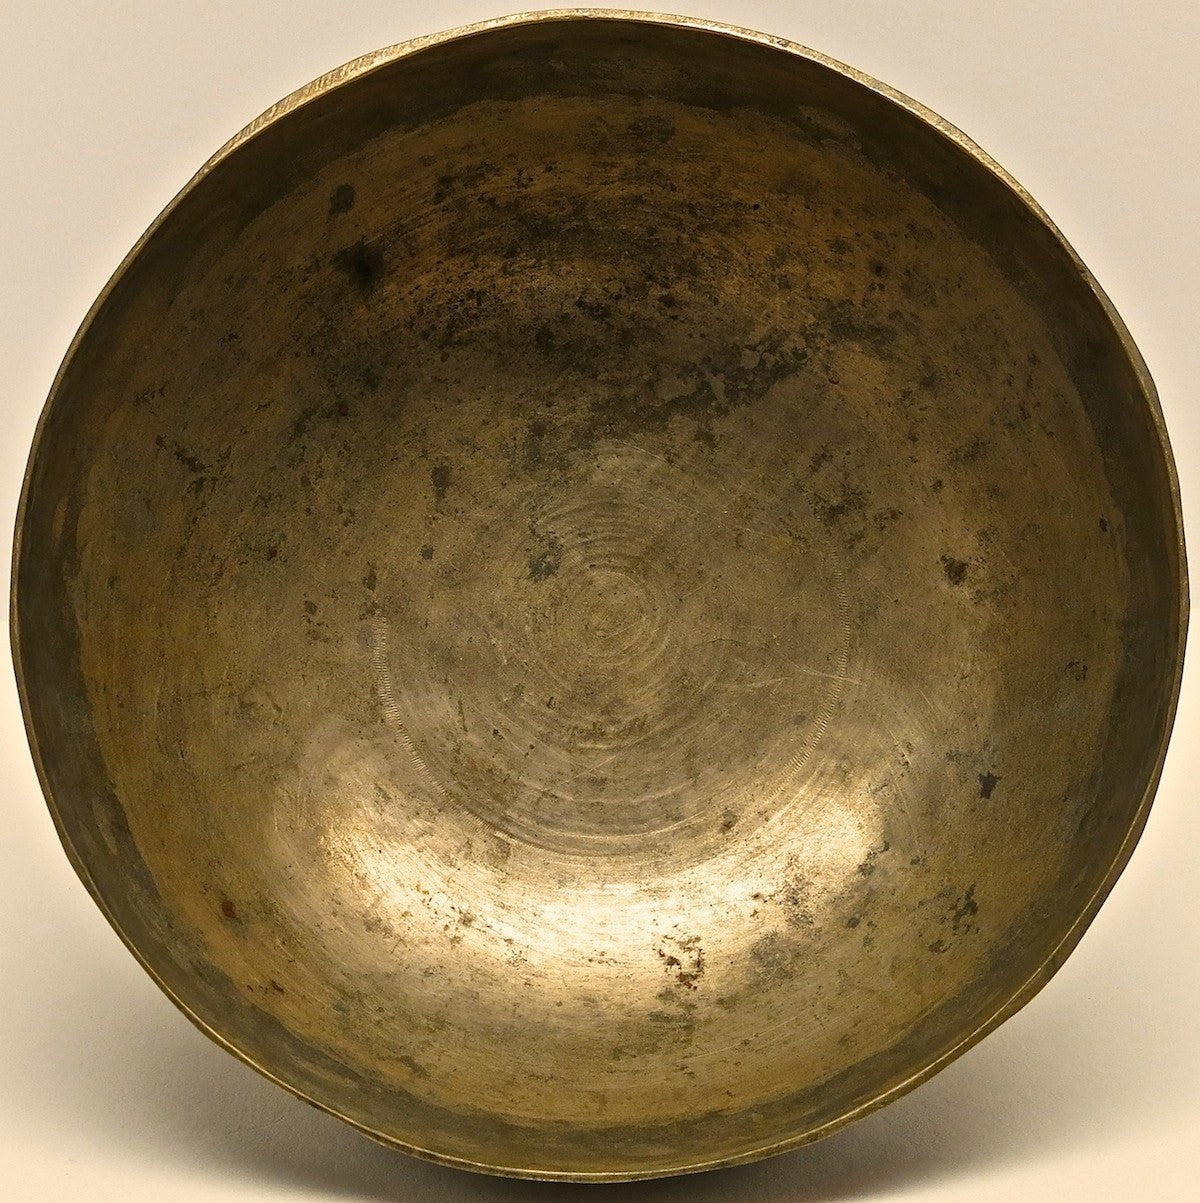 Antique Tibetan Singing Bowl - Antique Singing Bowl 6""